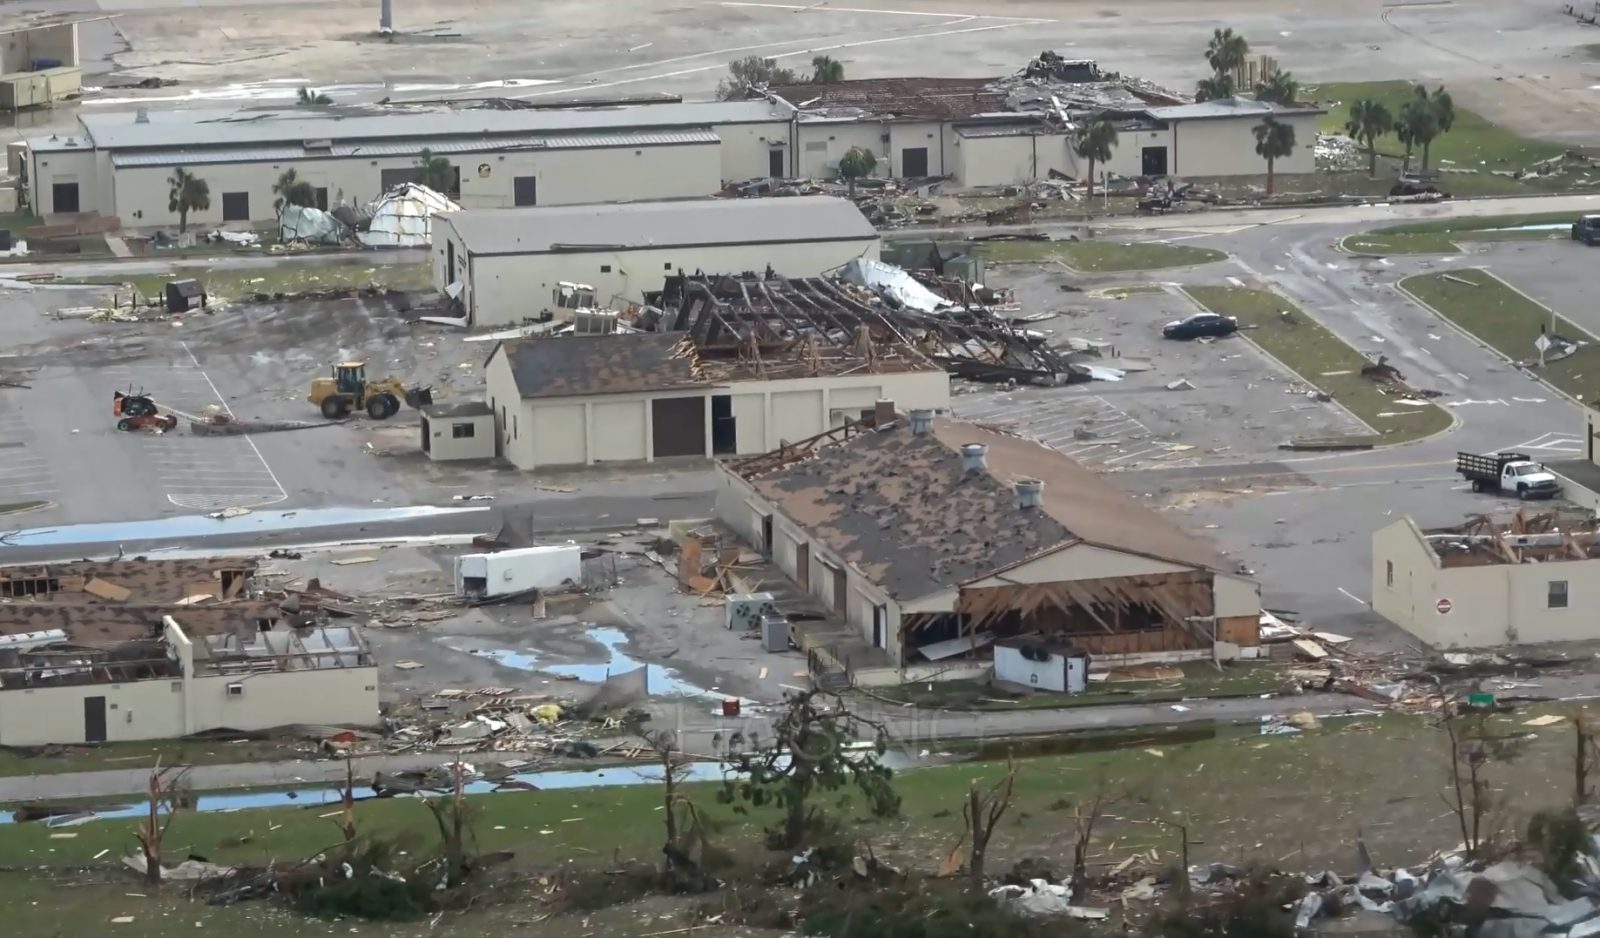 U.S.A.F Tyndall Air Force Base took a direct hit from Hurricane Michael